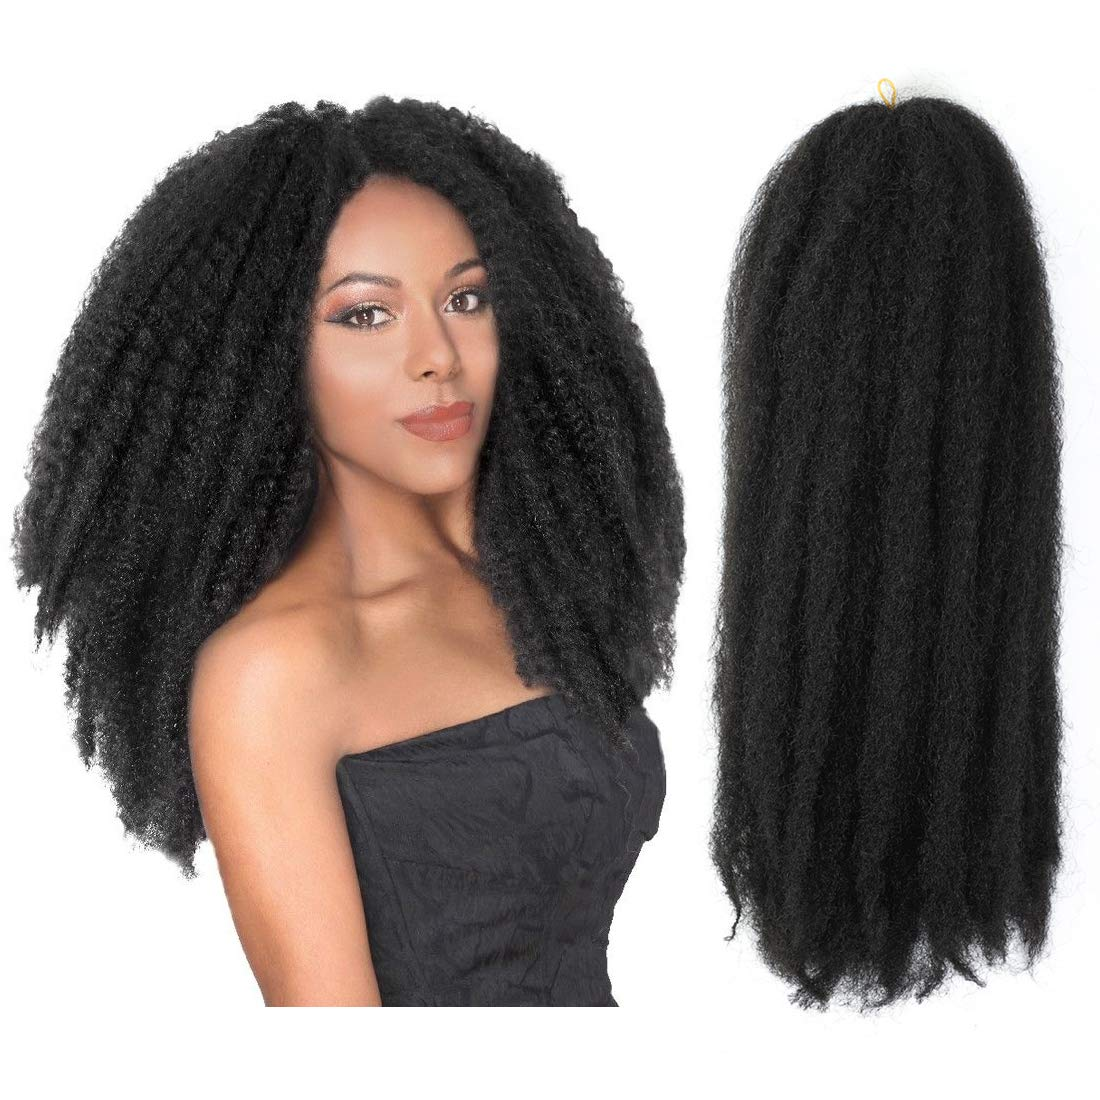 Afro Kinkys Curly Hair Extensions Long Afro Kinky Marley Twist Braiding Hair For Women And Girl 4 Bundles (18 inch, 1B#)